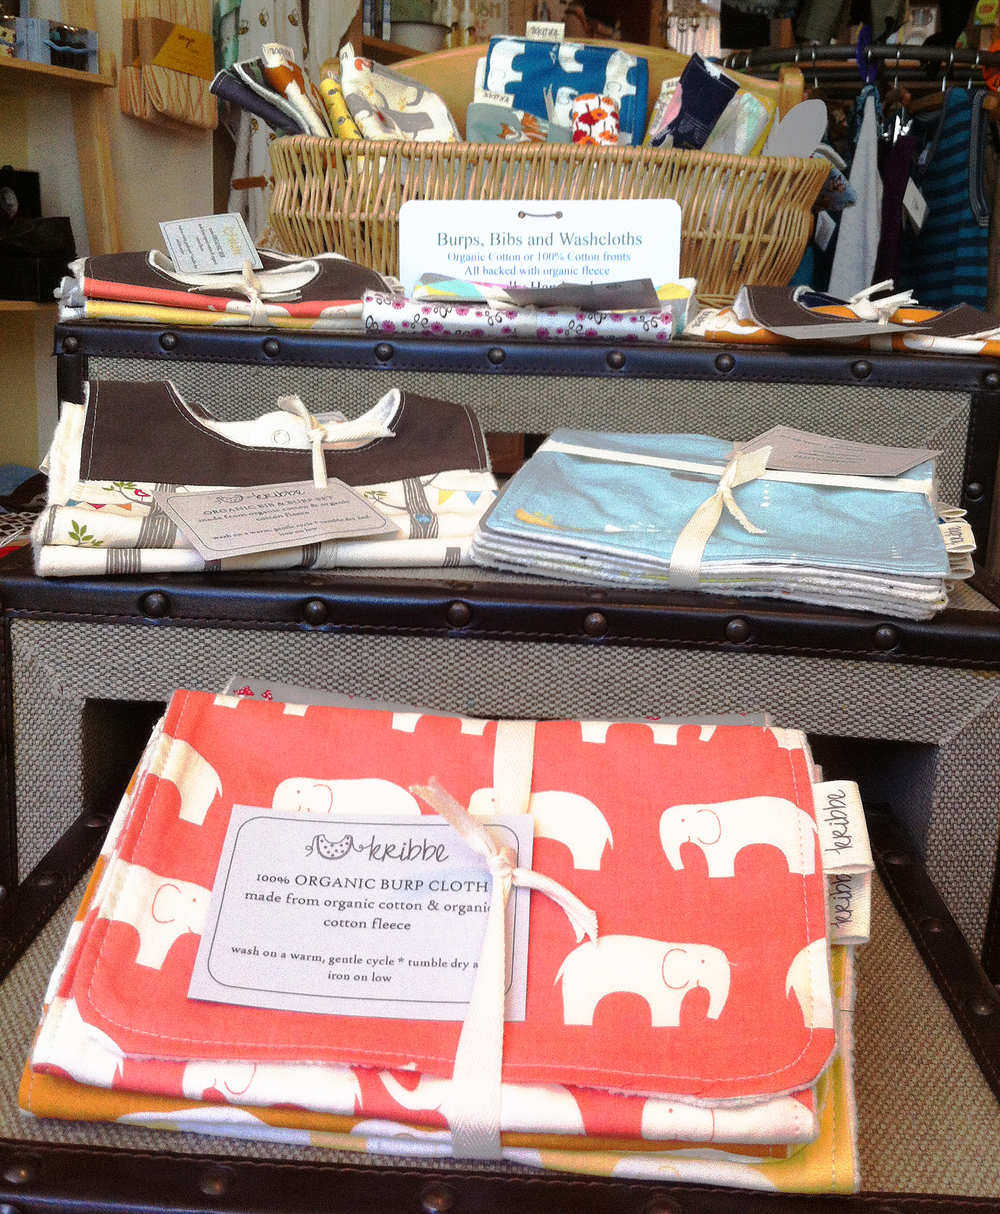 locally made organic washcloths, burps and bibs!